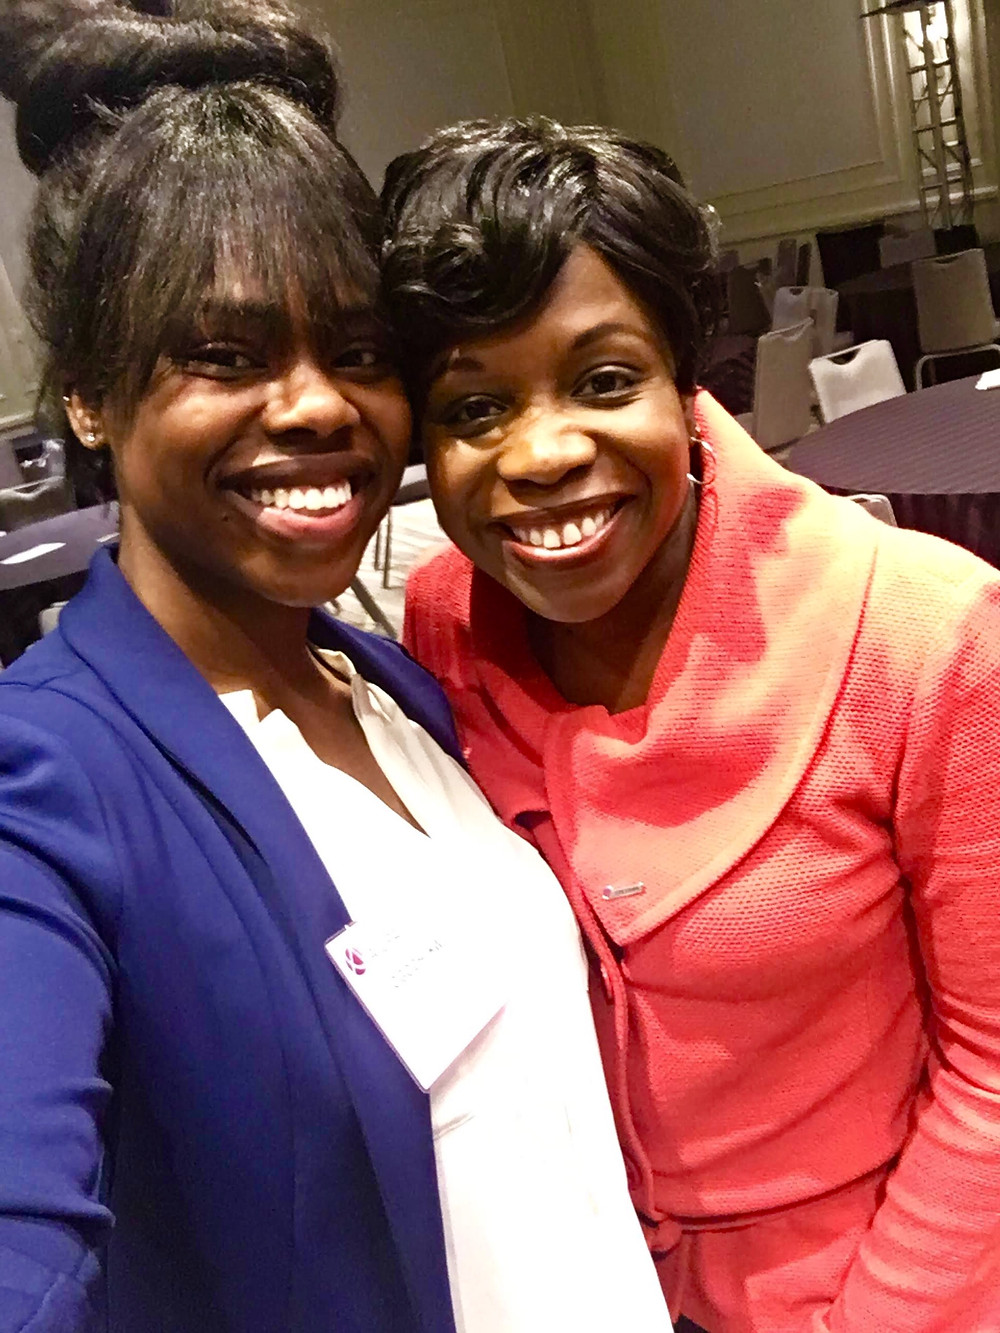 Ogo pictured with Ms. Ellison